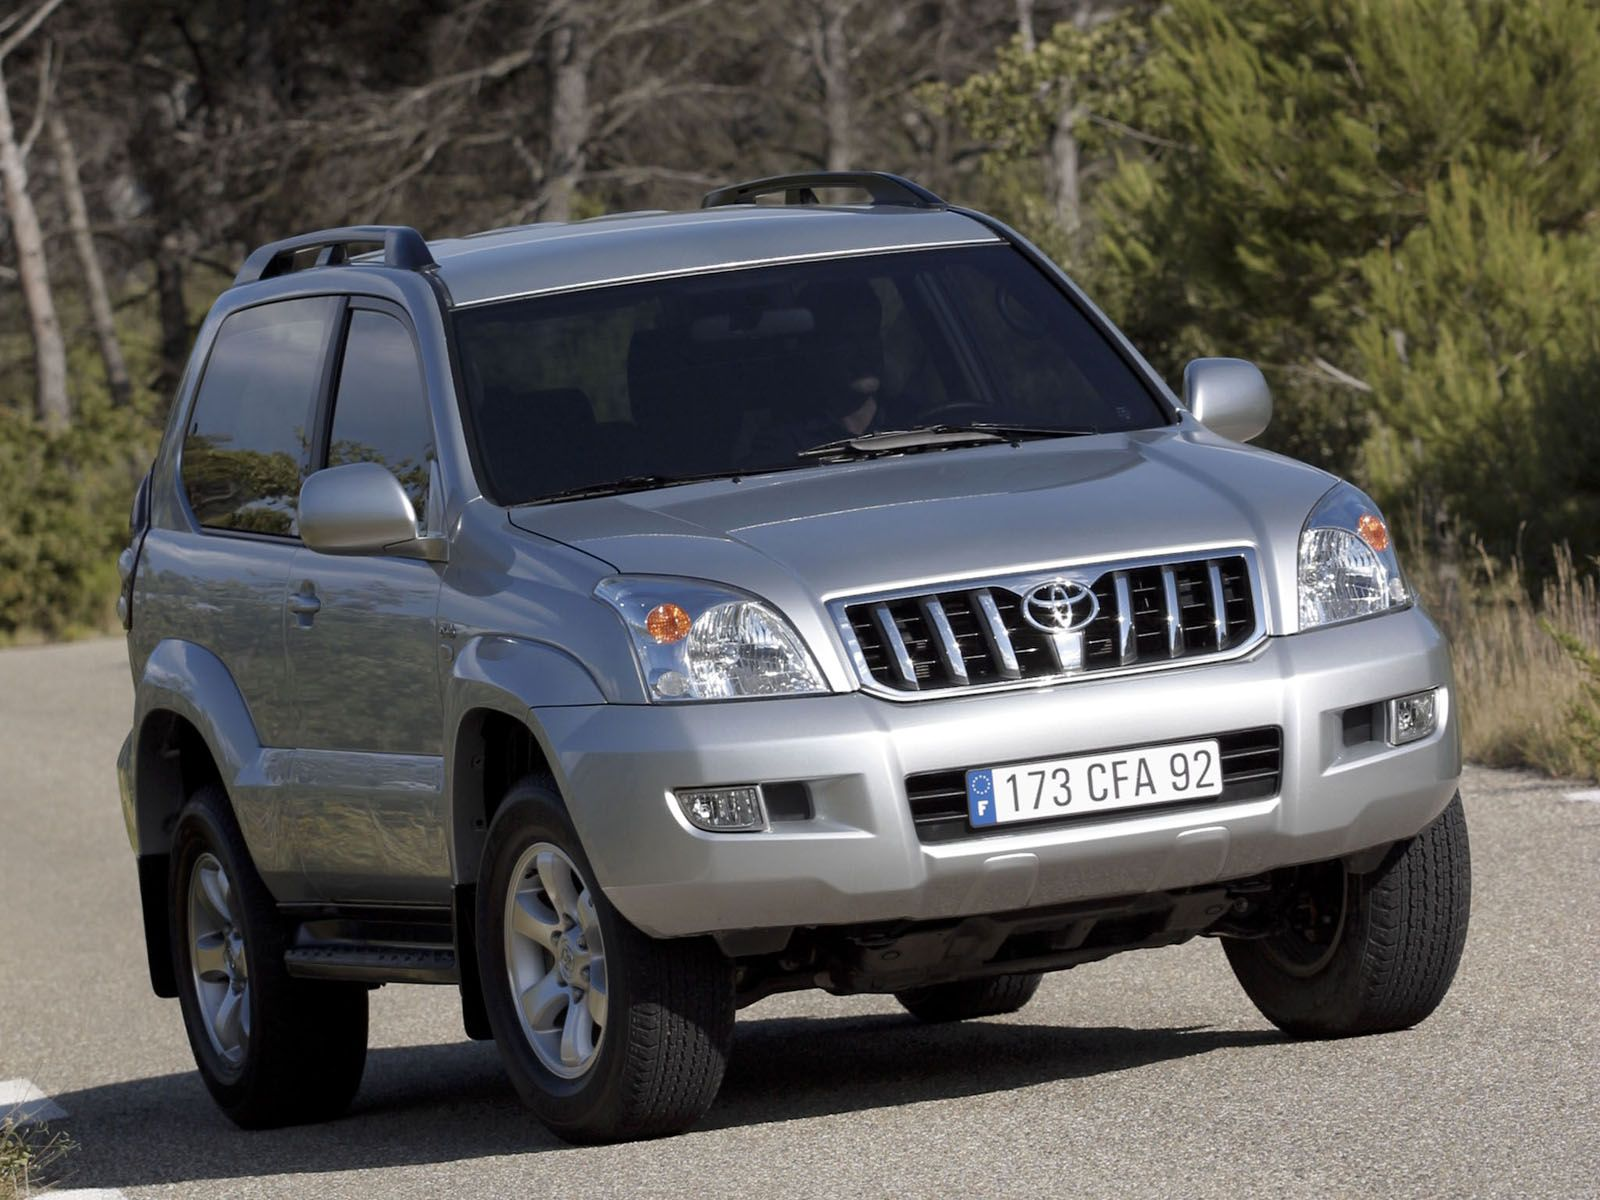 Toyota Land Cruiser Prado 120 Photos Photogallery With